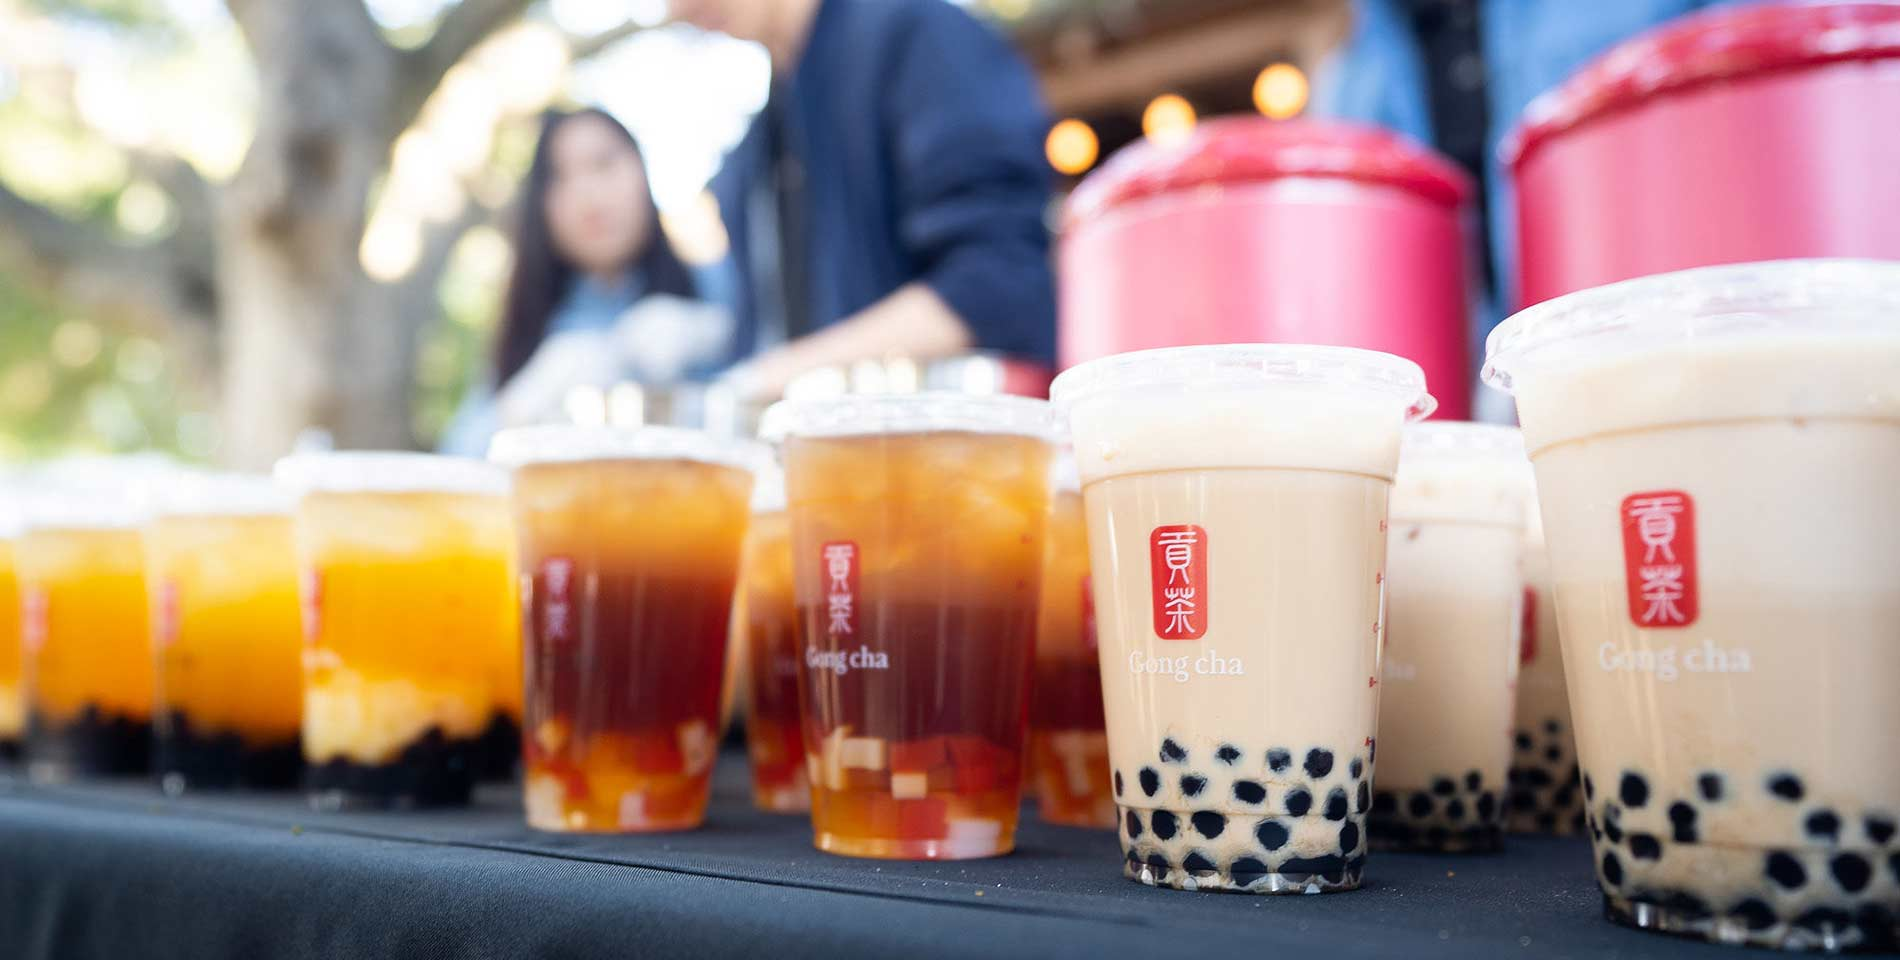 Catering with Gong cha